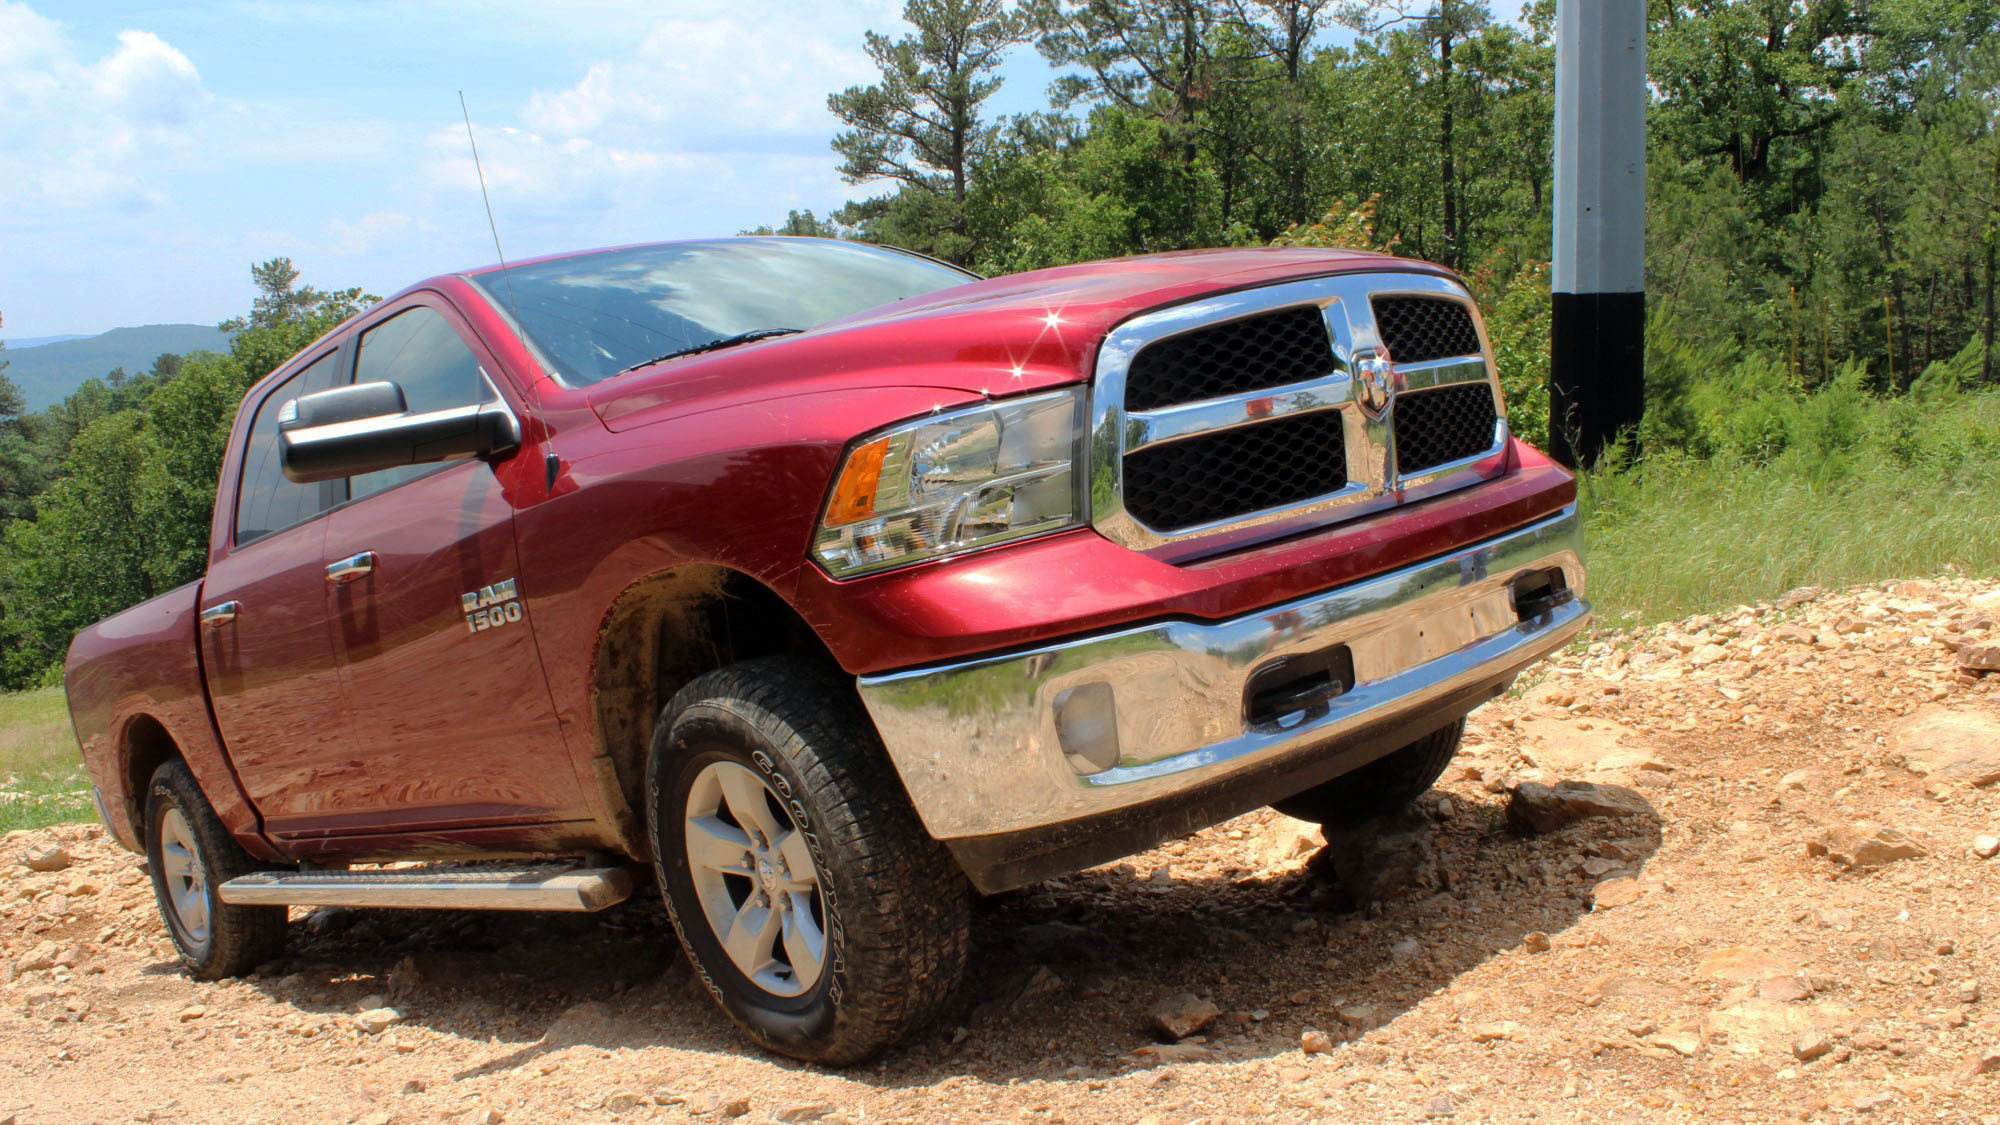 30 Days Of The 2013 Ram 1500 Off-Roading At Superlift ORV Park & 30 Days Of 2013 Ram 1500: Camping In Your Truck